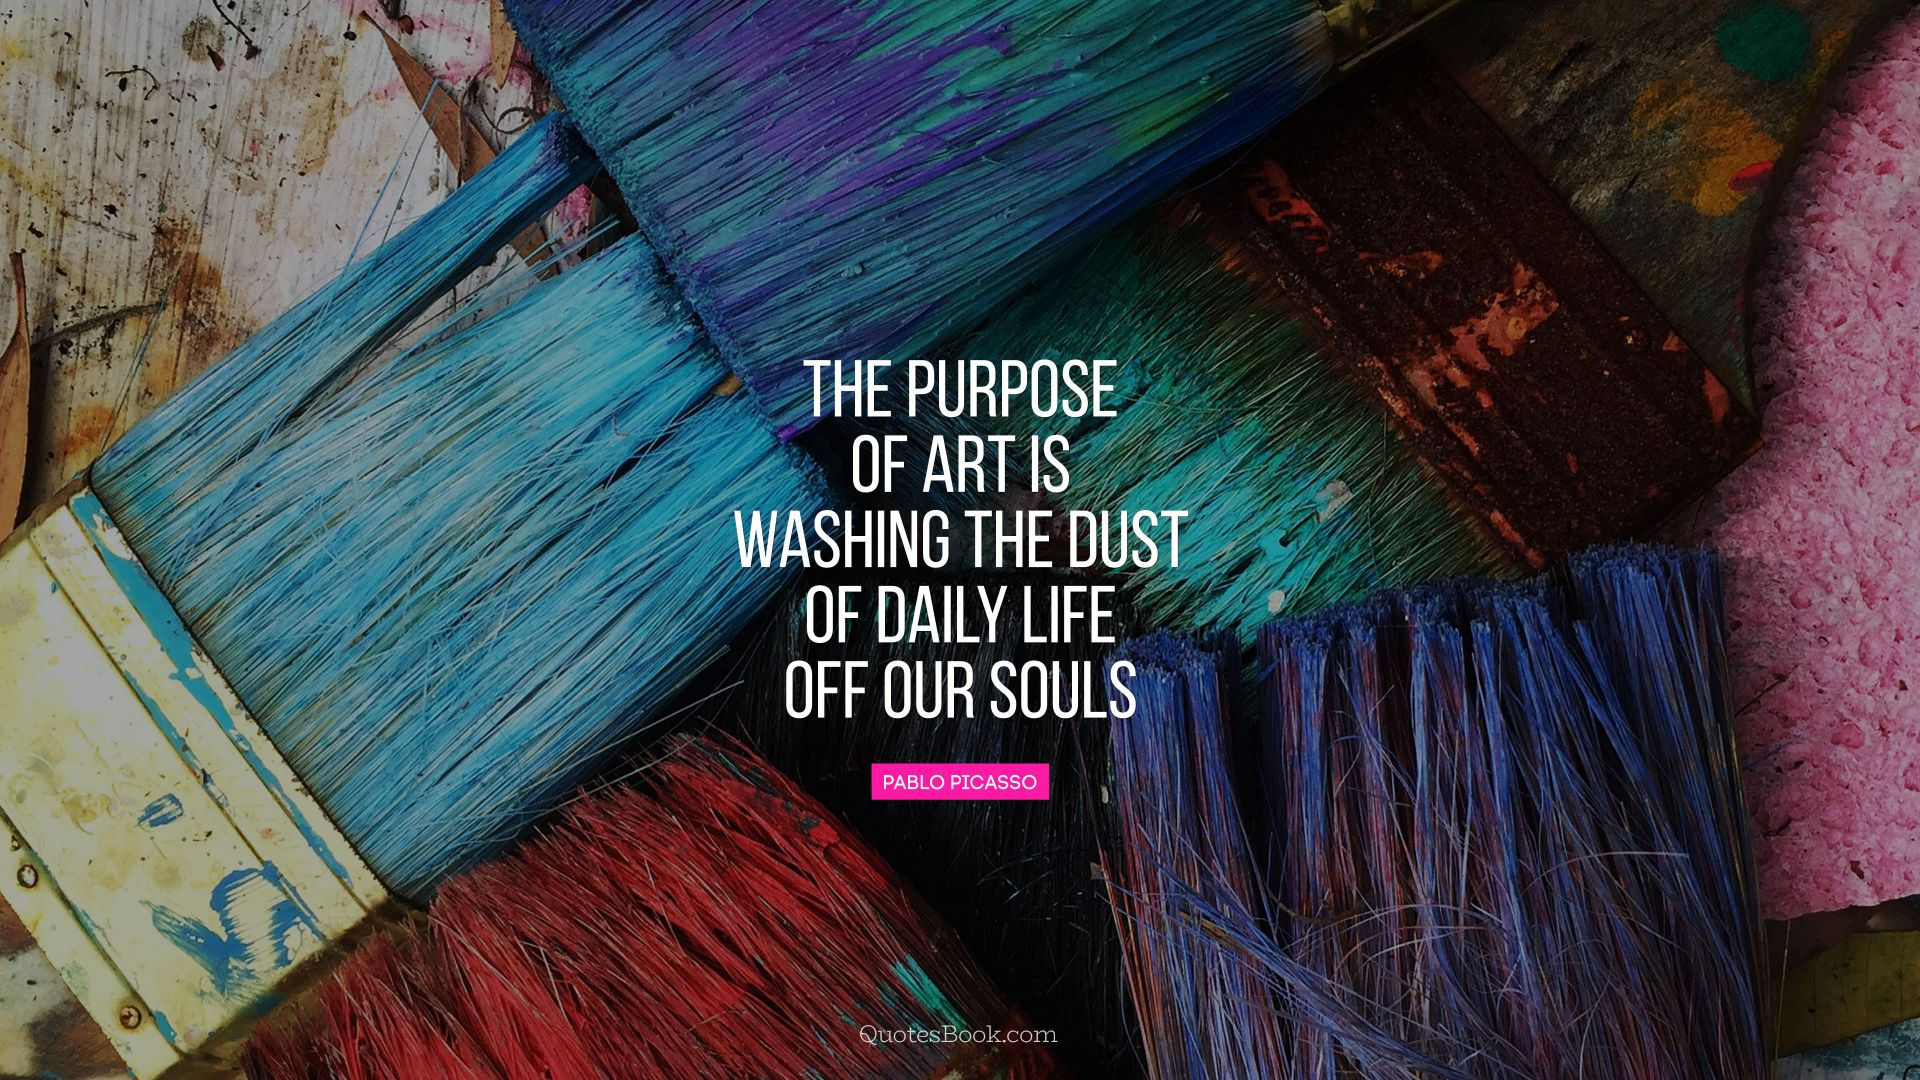 The purpose of art is washing the dust of daily life off our souls. - Quote by Pablo Picasso